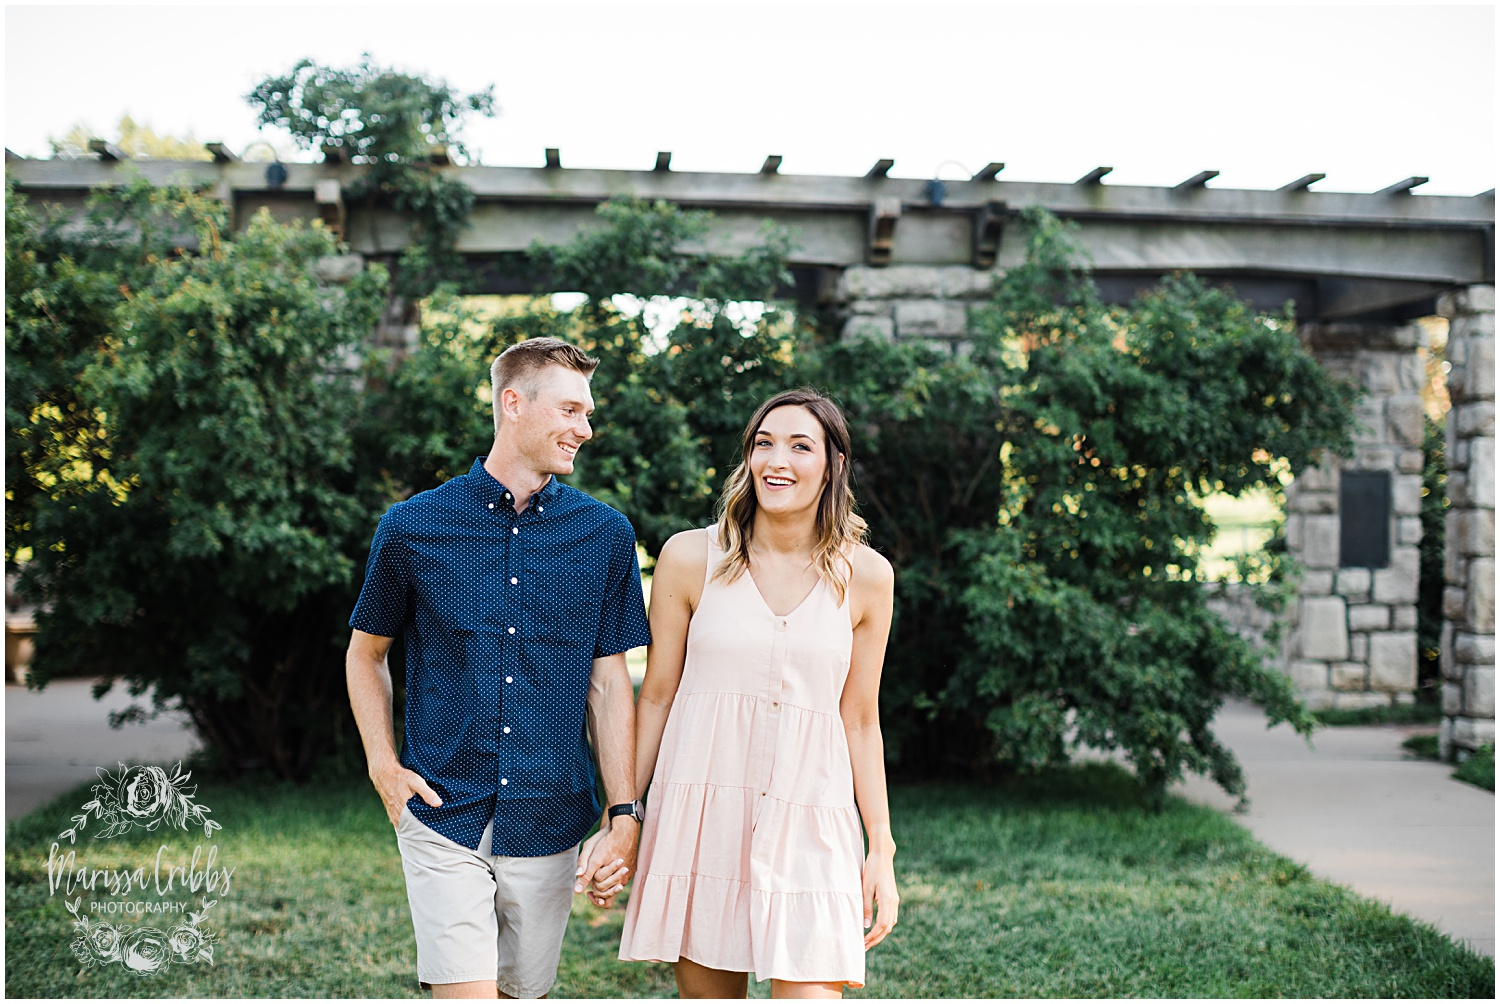 KELSEY & MICHAEL ENGAGEMENT BLOG | MARISSA CRIBBS PHOTOGRAPHY_8436.jpg